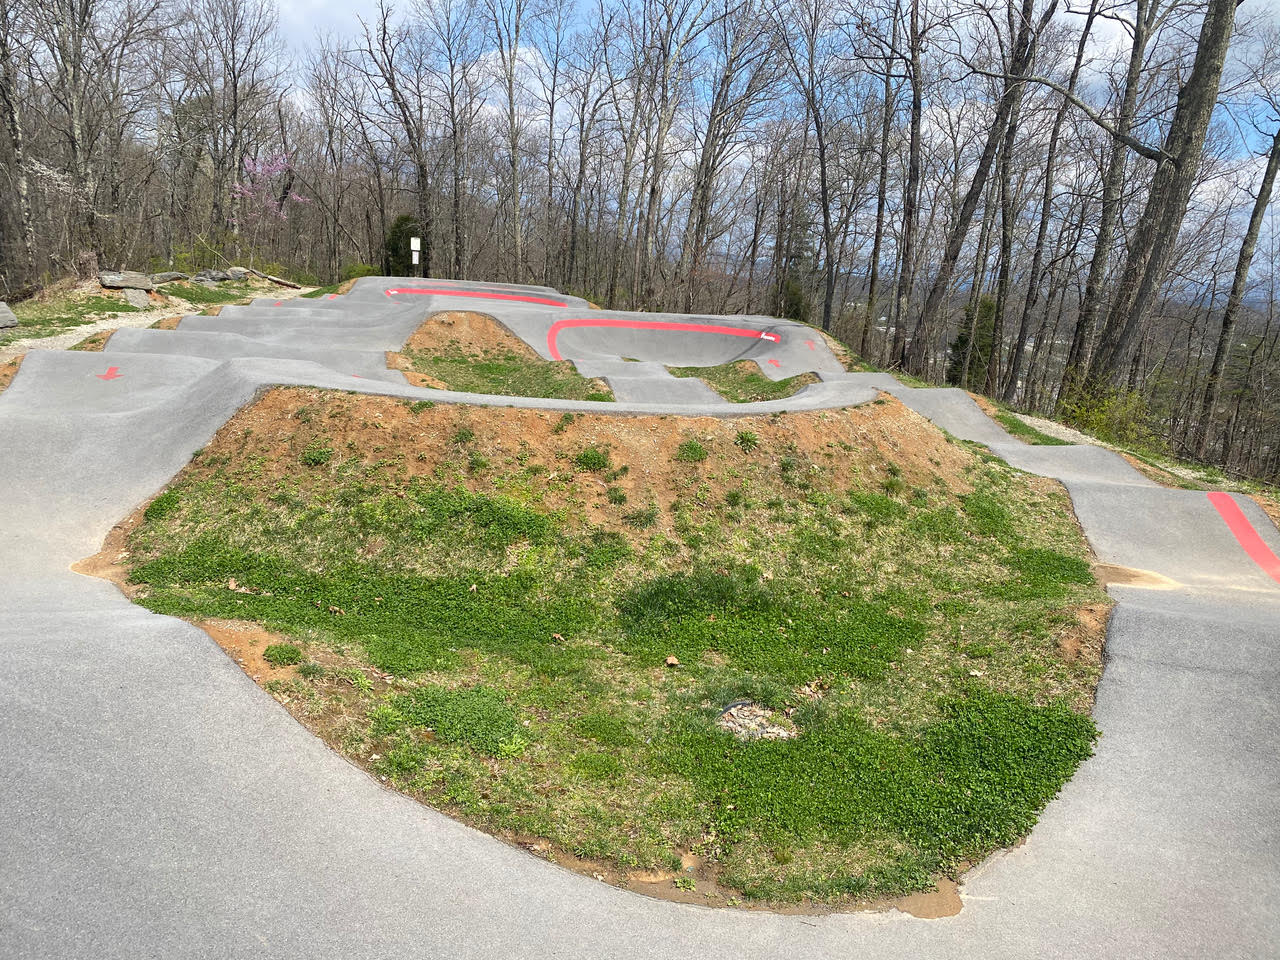 Tannery Knobs Pump Track in Johnson City, Tennessee Photo: Melody Pittman